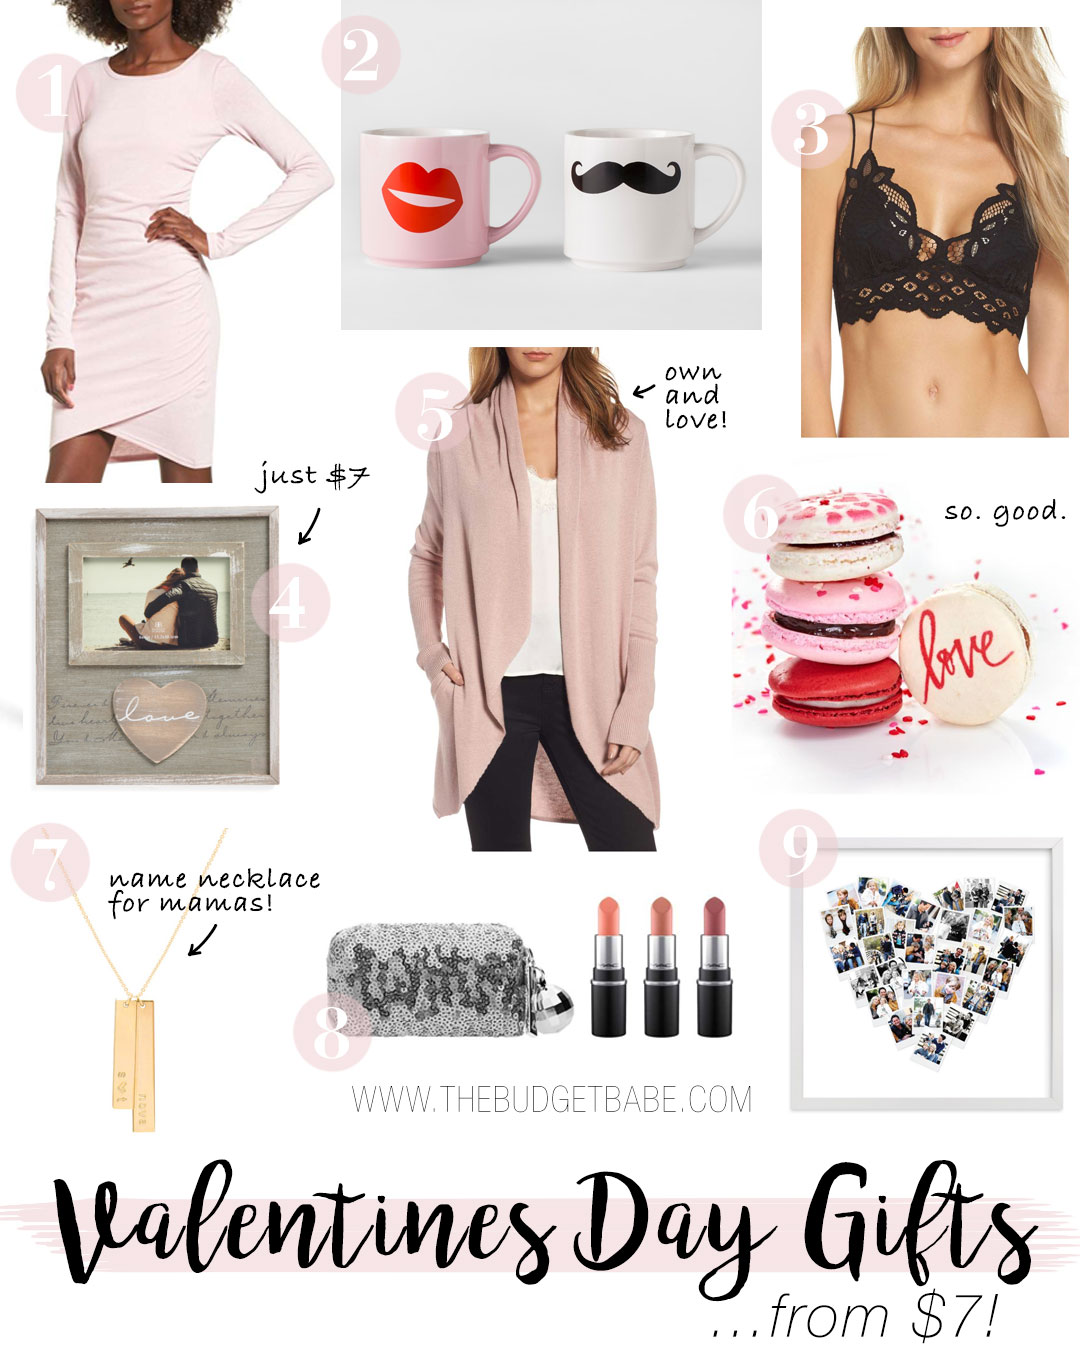 Valentine's Day gift guide from The Budget Babe